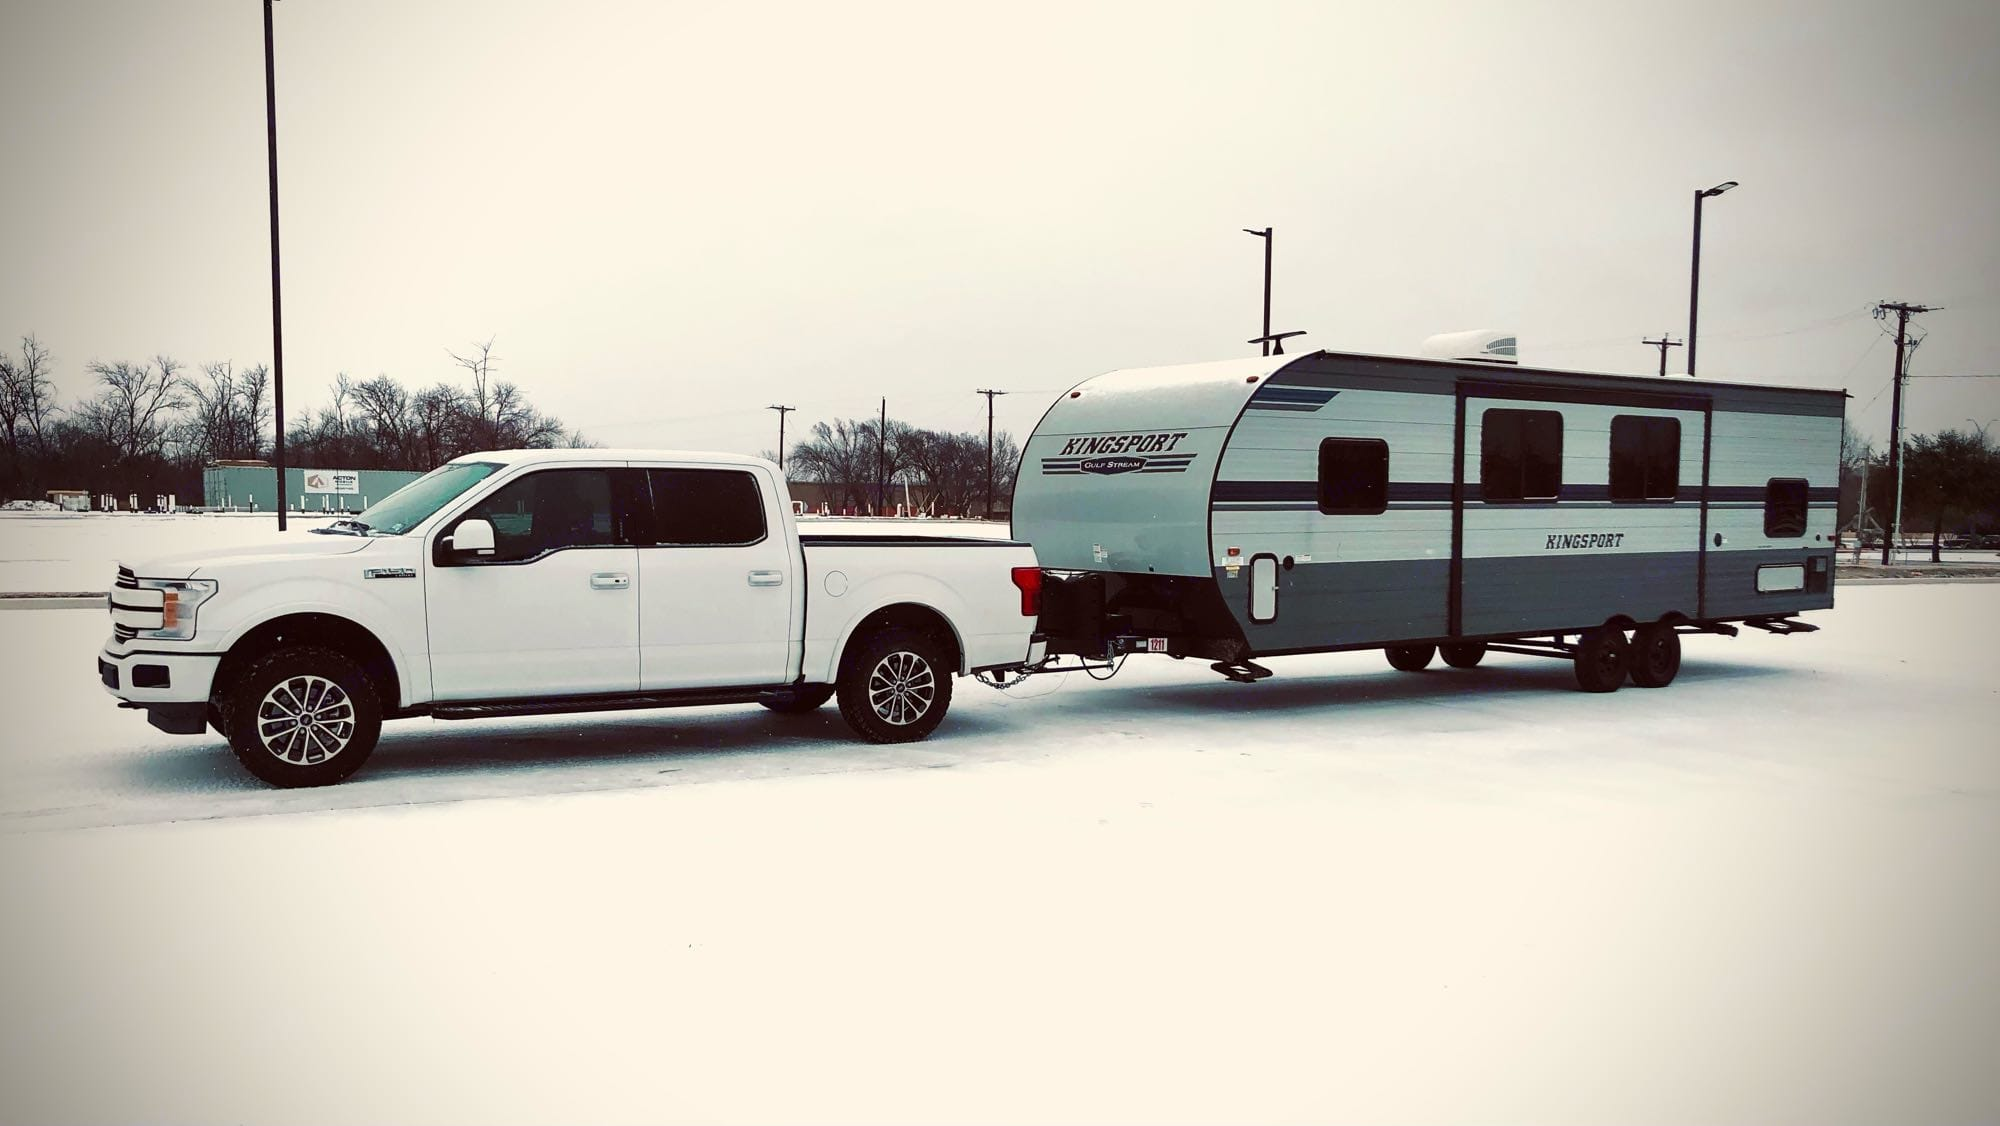 Sunshine or snow, The Big Lebowski will get you where you need to go!. Gulf Stream Kingsport 2021